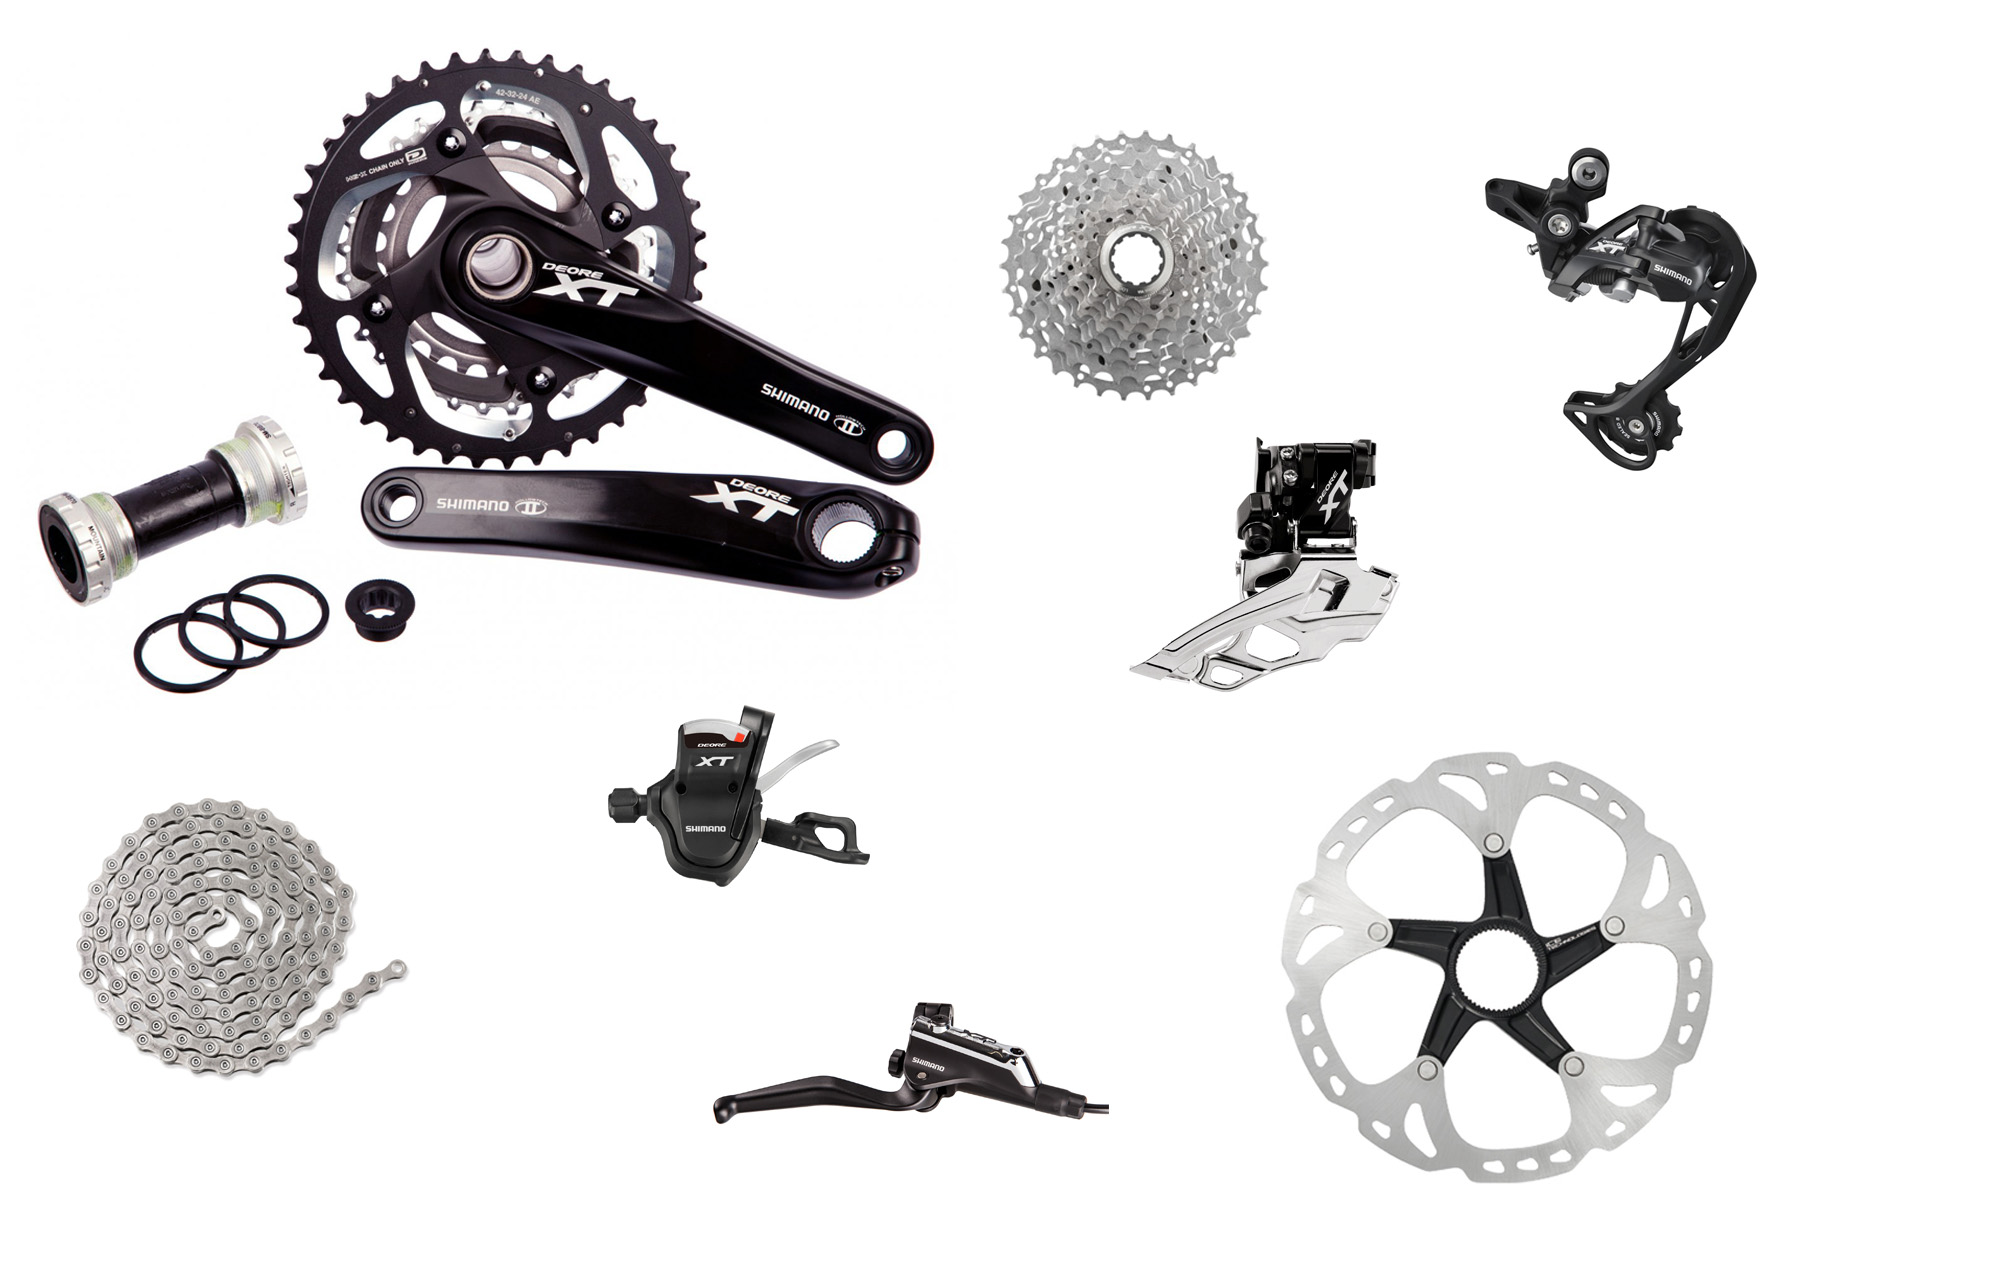 """Shimano XT M 10sp Complete Double Groupset SHIMANO DEORE XT, the world's first mountain biking component group is completely revamped for its 30th birthday. From the early days until today, """"XT"""" has been the benchmark in mountain bike component technology, excelling in quality, innovation and performance combined with an extensive."""